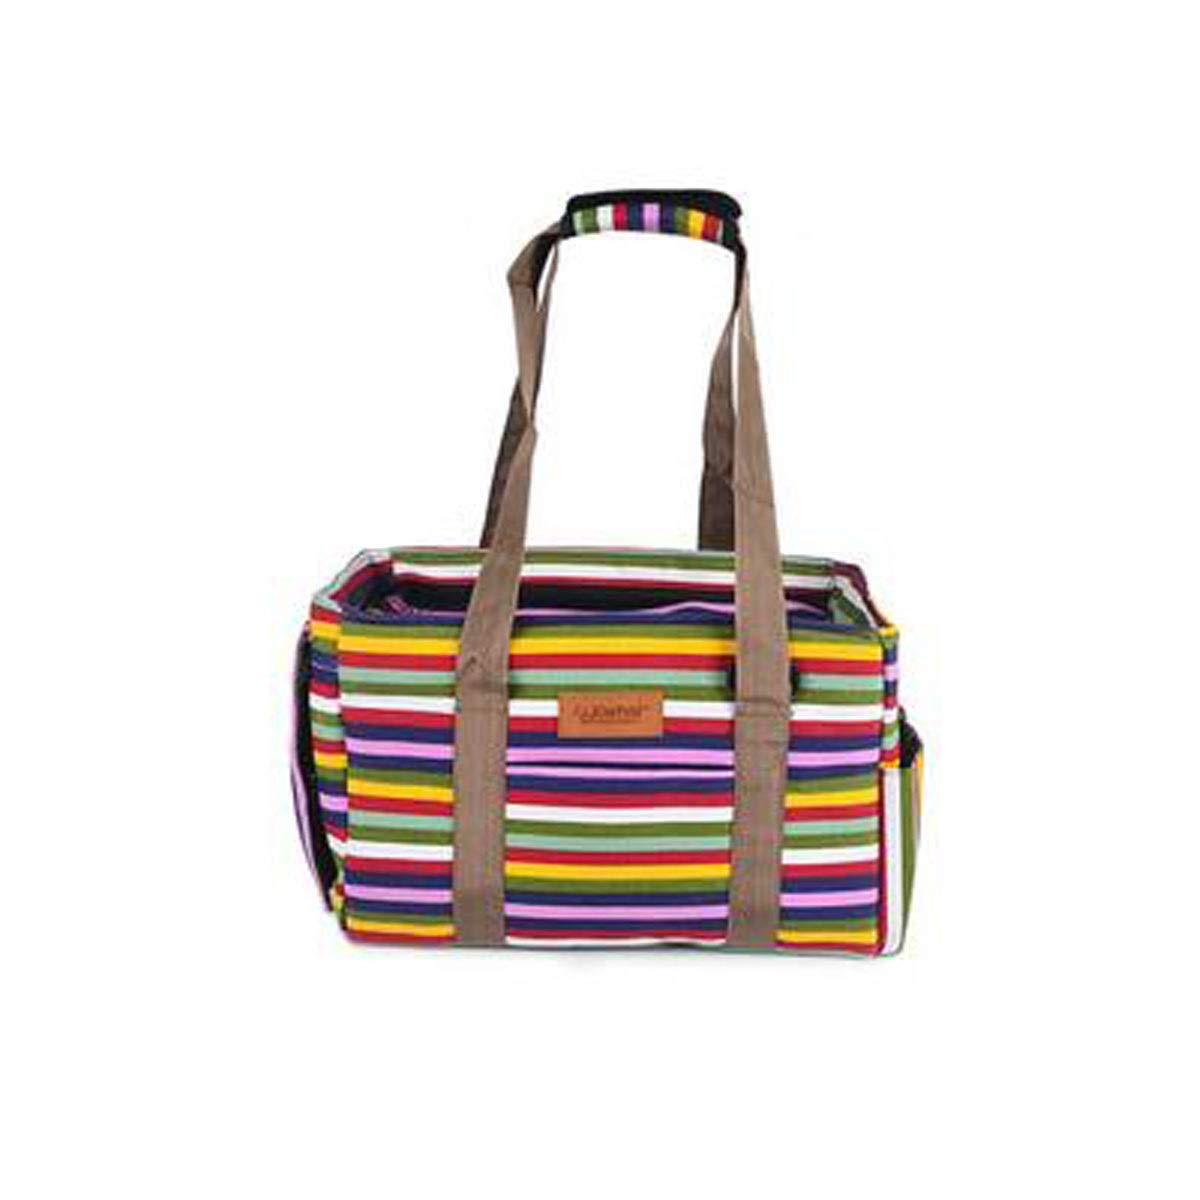 Rainbow Stripes Guyuexuan Pet Carrier, Airline Approved Soft Animal Carrier, Portable Soft Air Travel Bag, Best for Small and Medium Dogs and Cats Pet Travel Essentials (color   Rainbow Stripes)